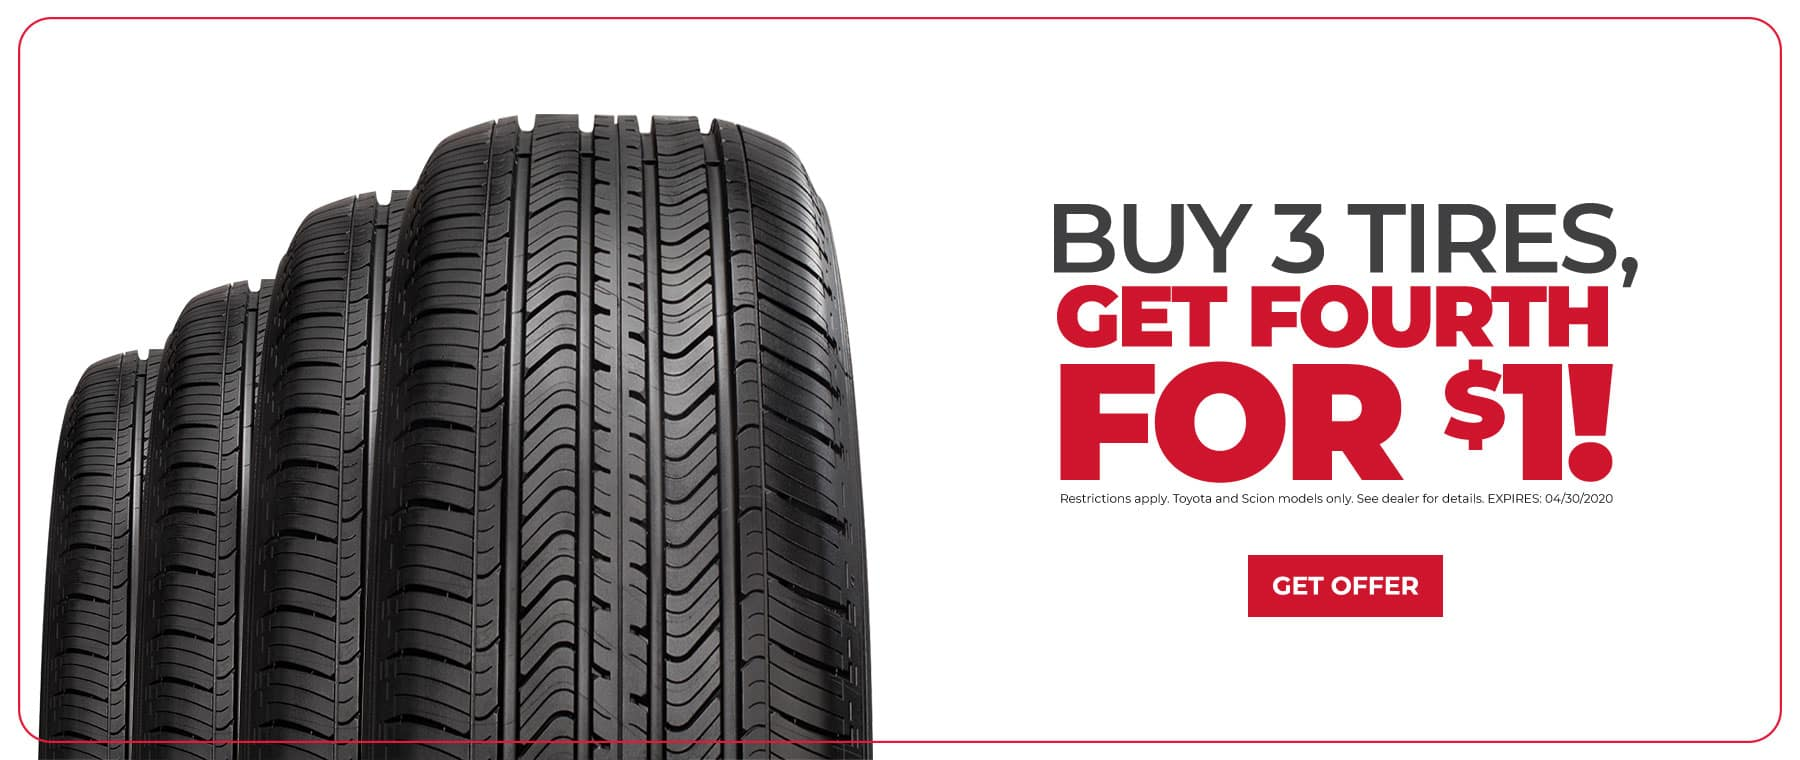 Buy 3 Tires Get Fourth for $1